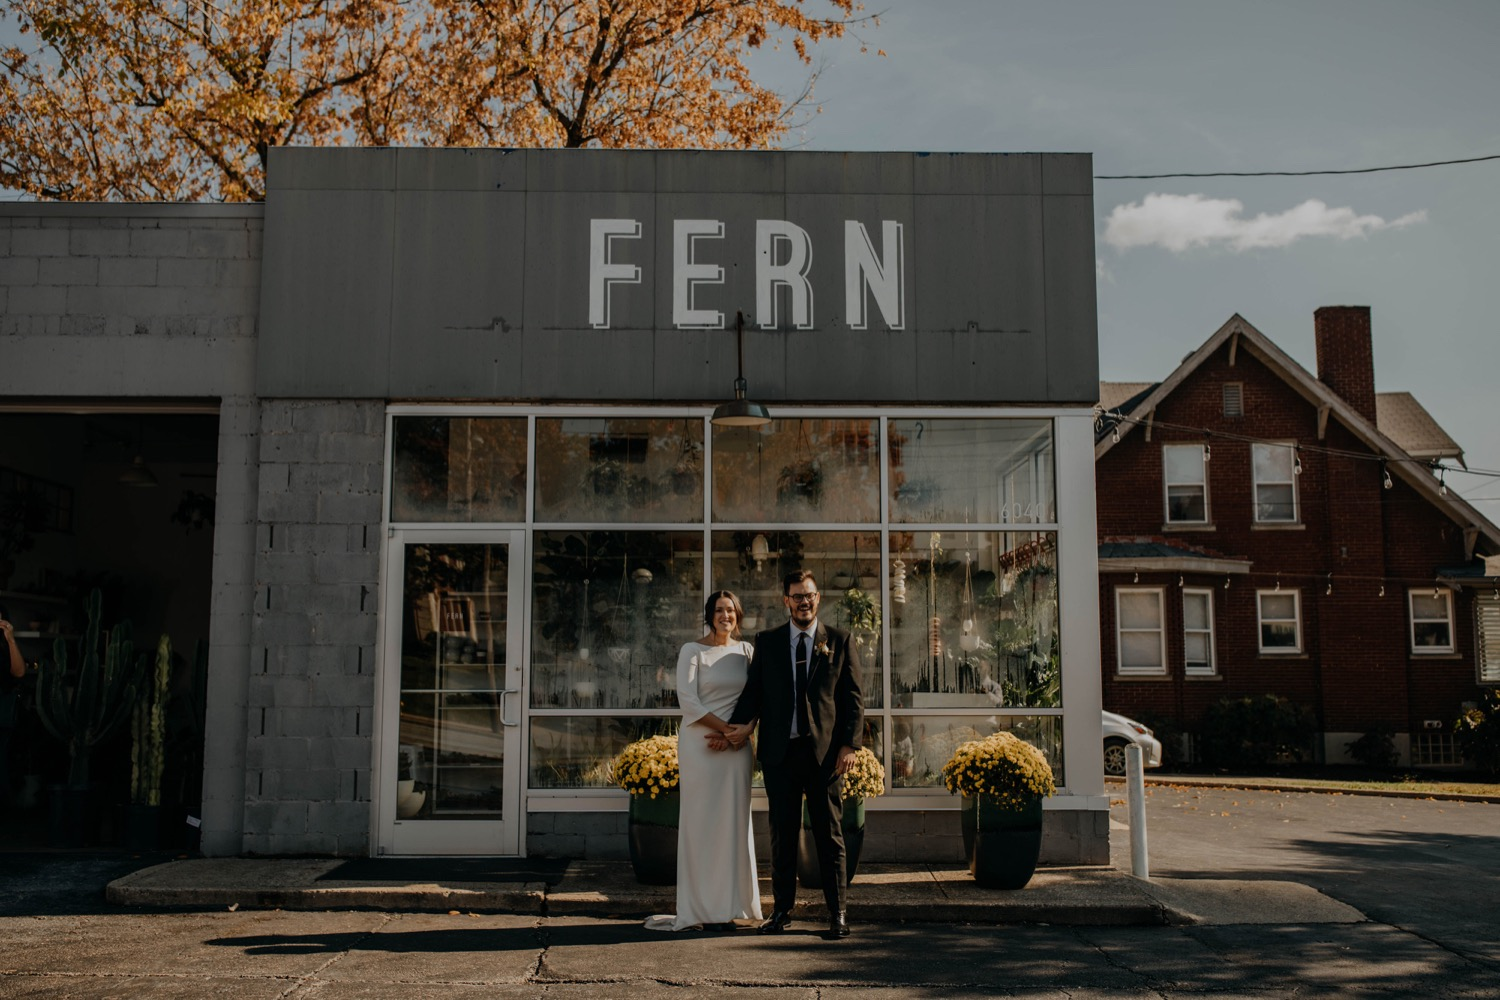 Fern shop Cincinnati intimate wedding ohio wedding photographer grace e jones photography264_1500.jpg